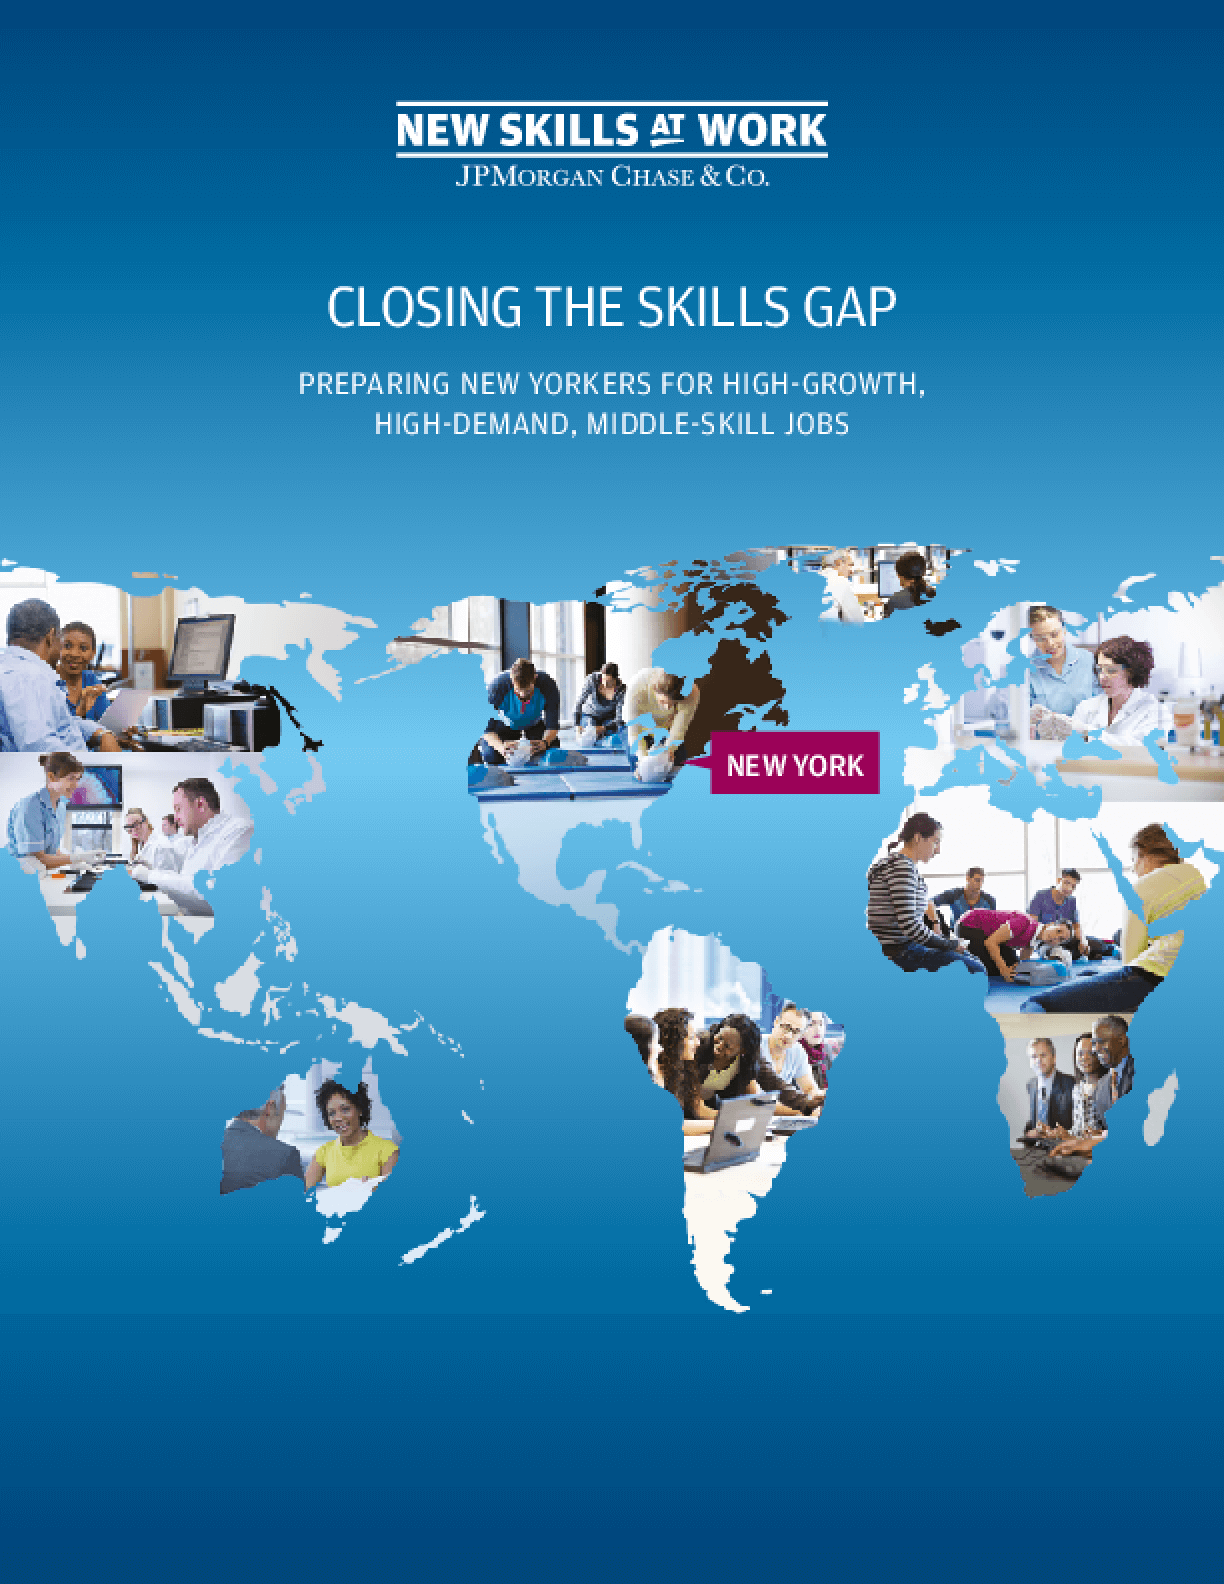 Closing The Skills Gap: Preparing New Yorkers for High-Growth, High-Demand, Middle-Skill Jobs